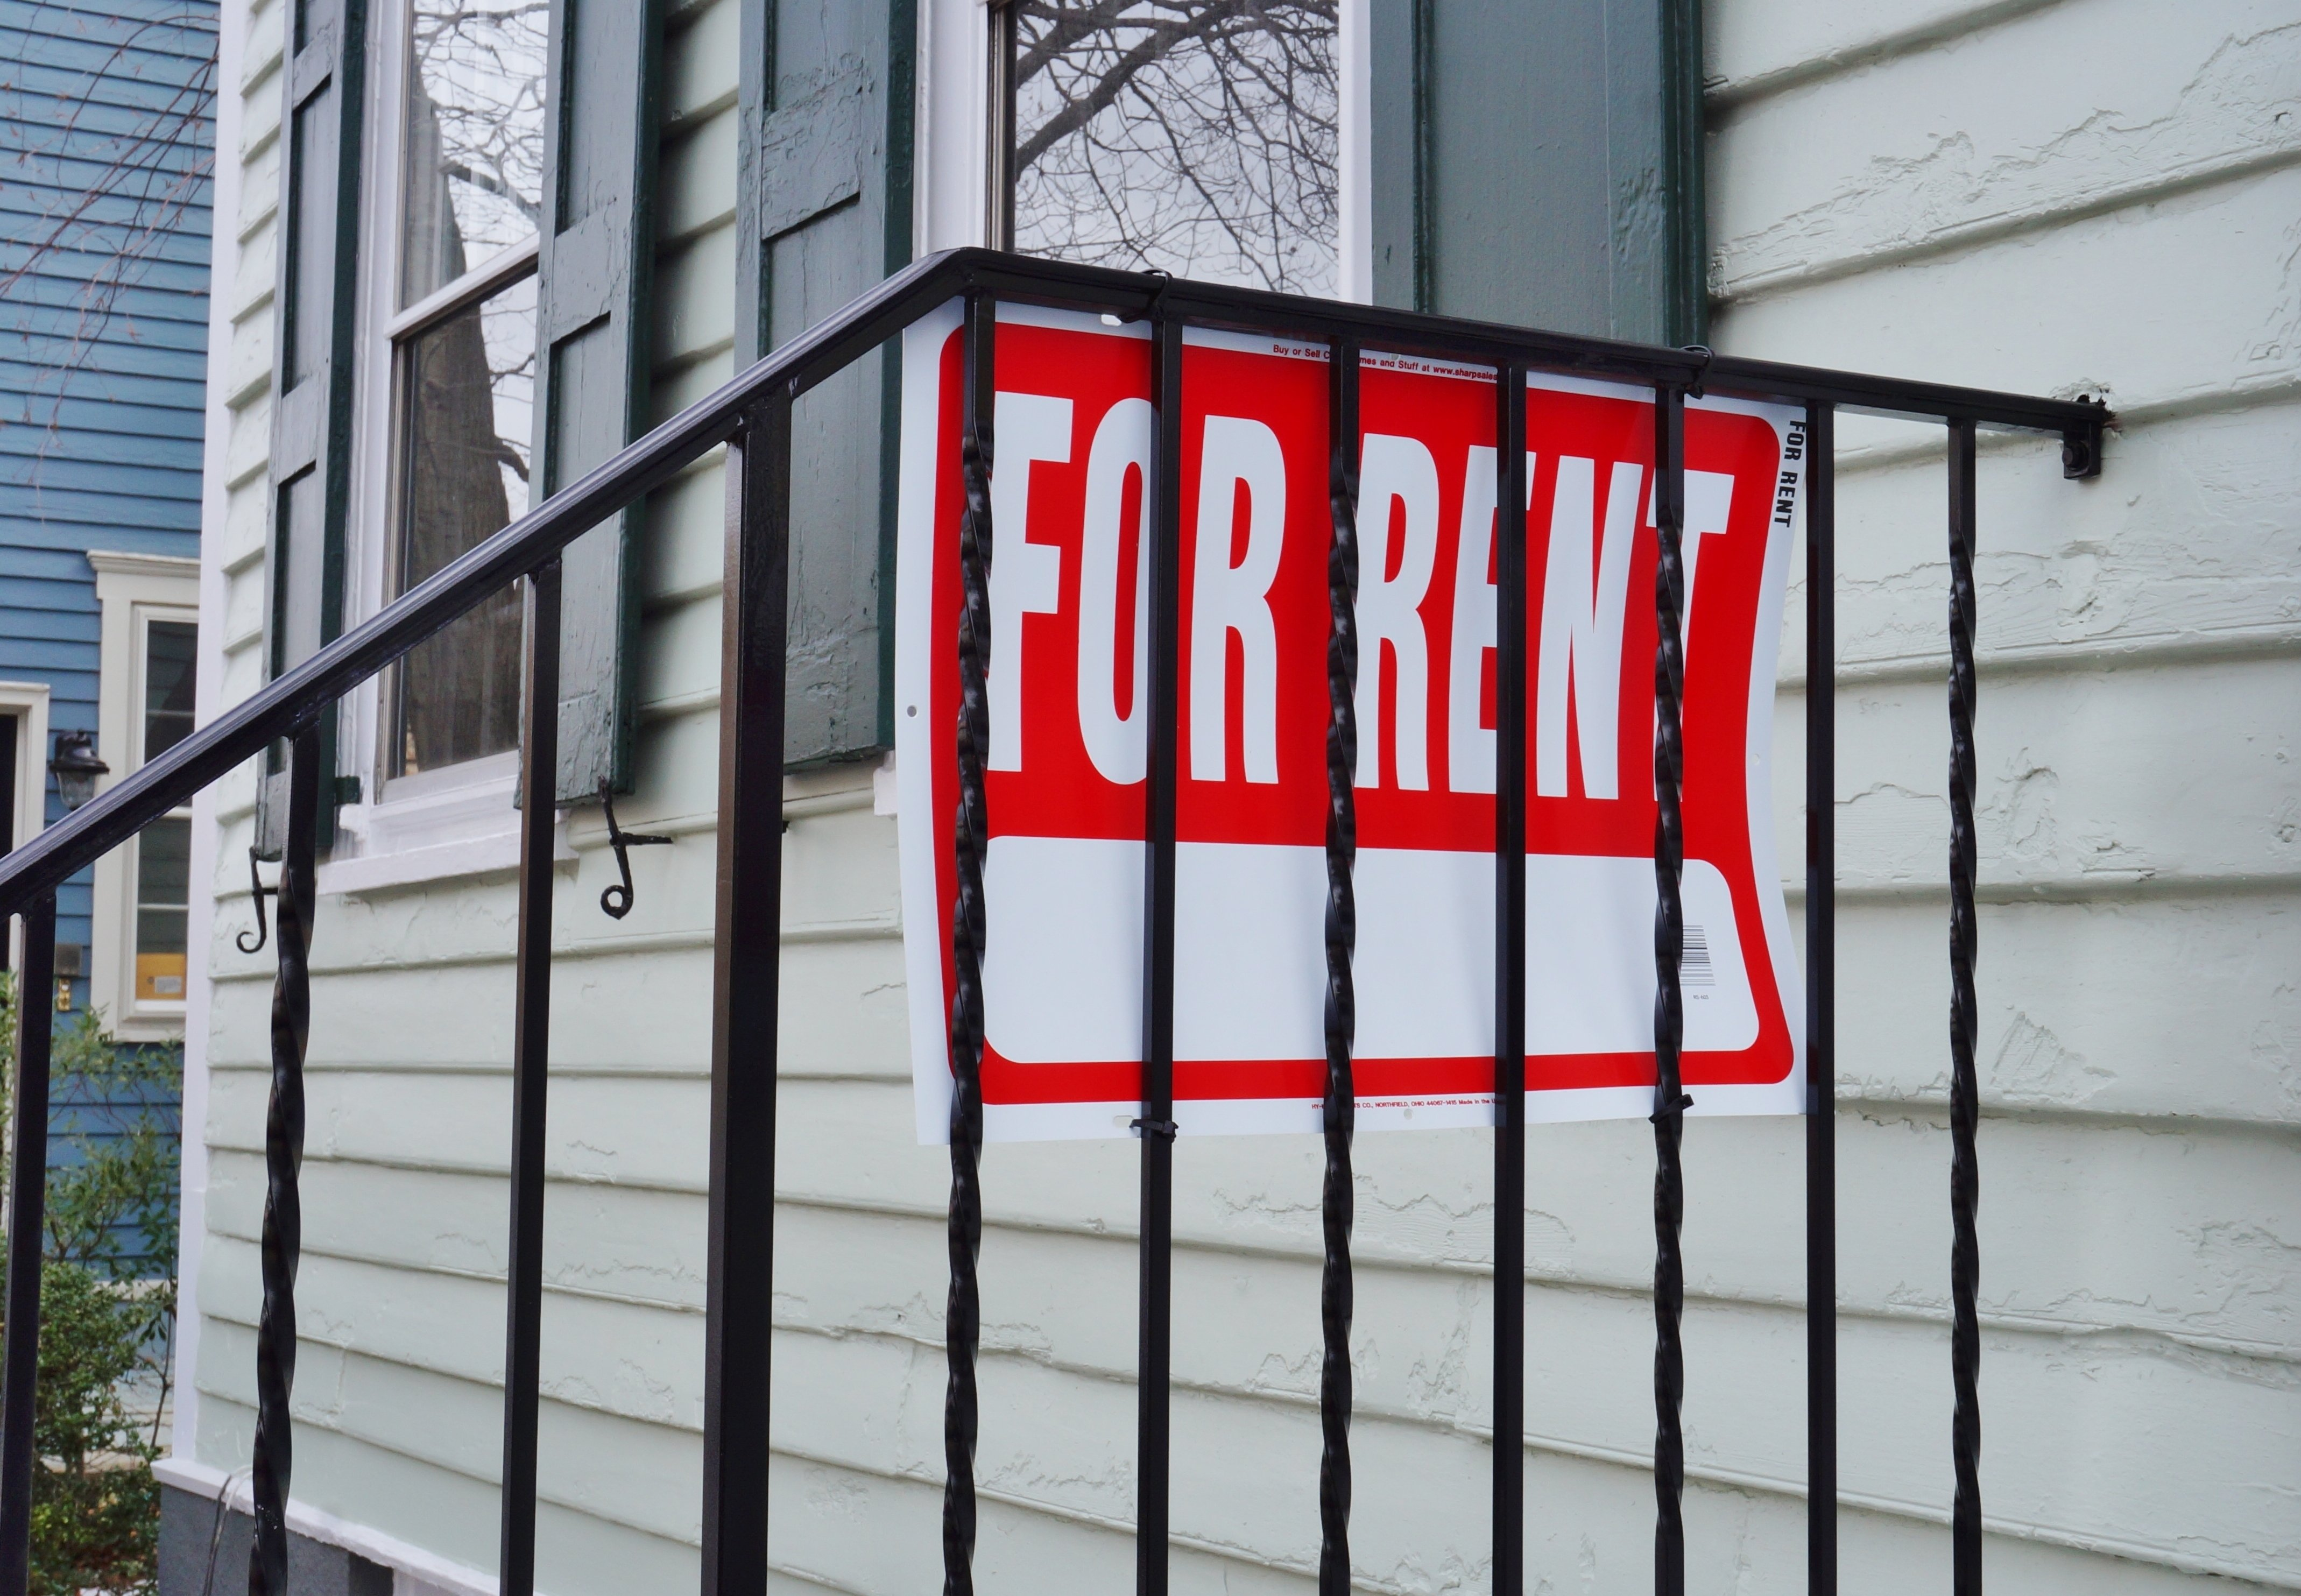 PRINCETON, NJ -8 FEB 2016- For Rent sign in the street. The property market in the United States has recovered from the 2008 housing crash, but there are vast regional differences in real estate. (Via Shutterstock)